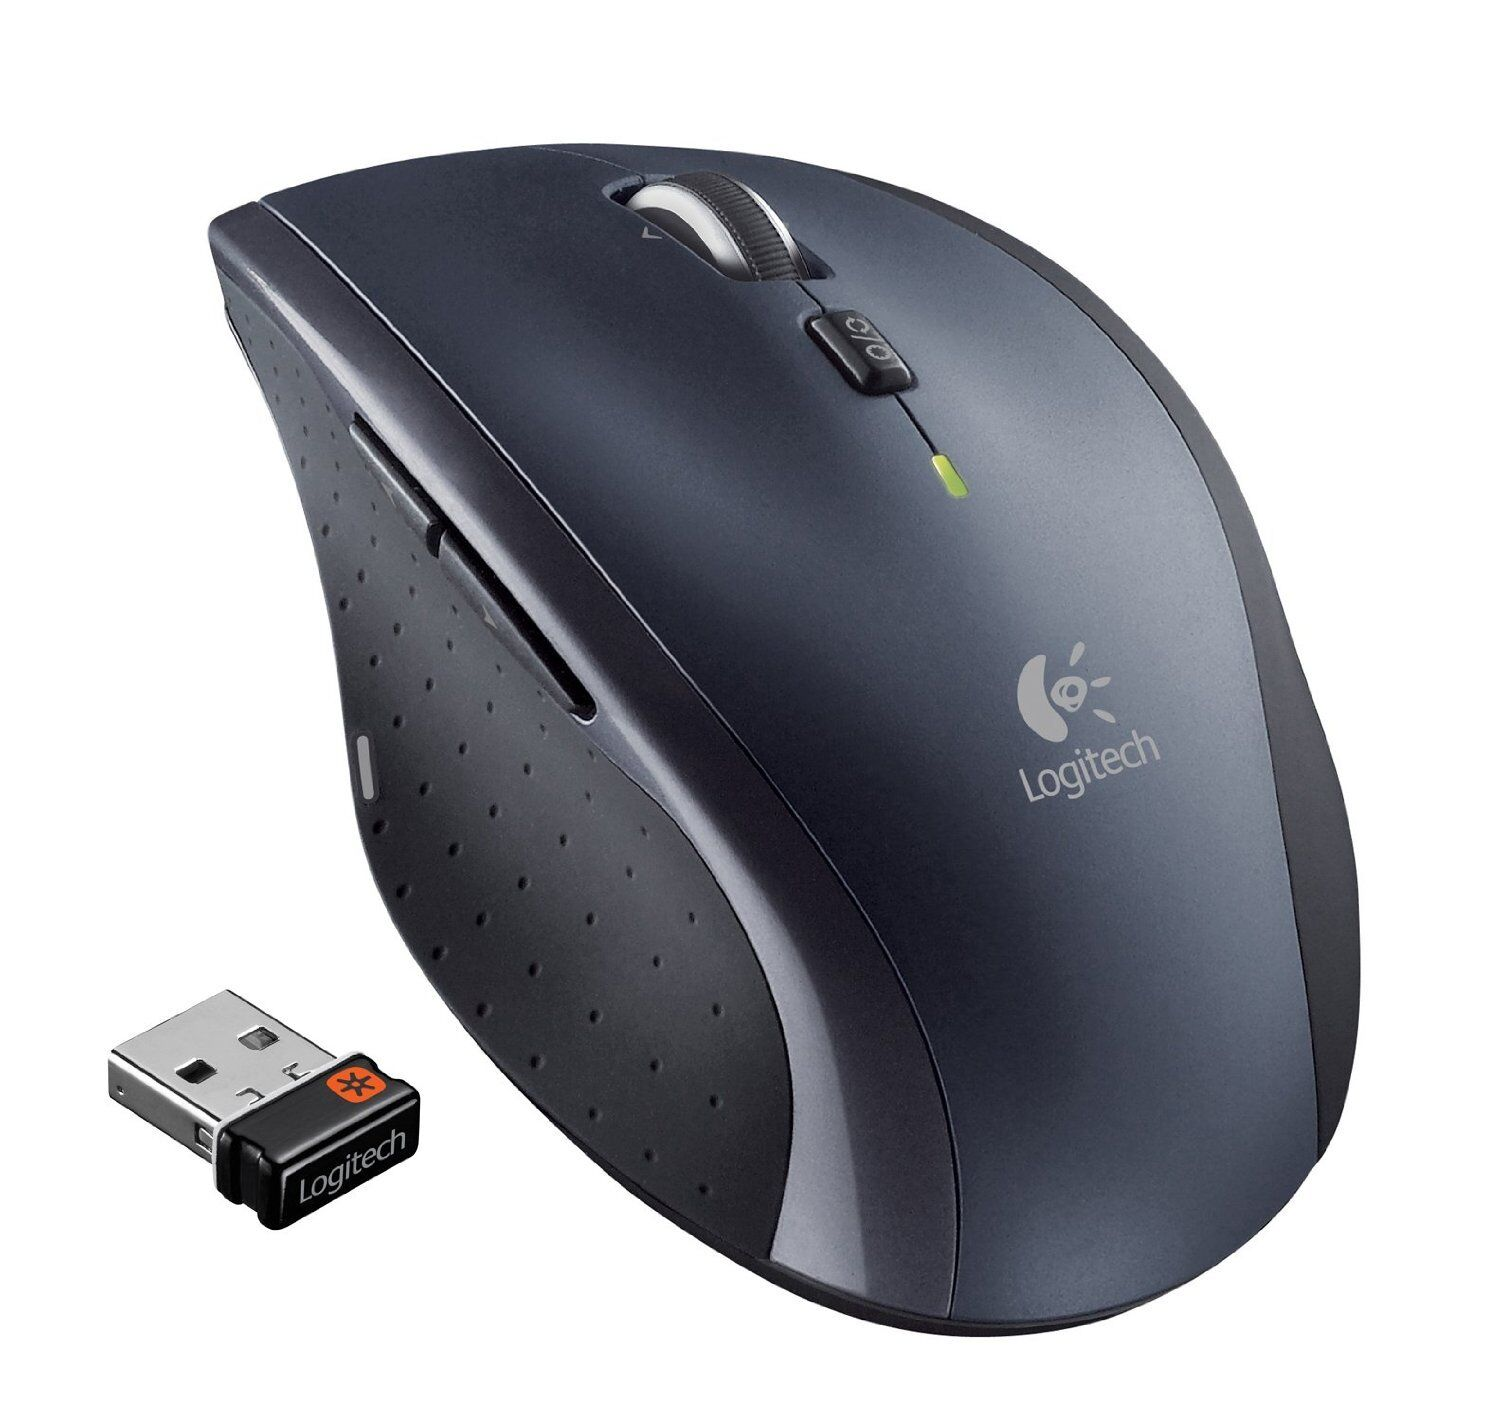 Logitech M705 Marathon Mouse 910-001949 Wireless Laptop Computer Mouse